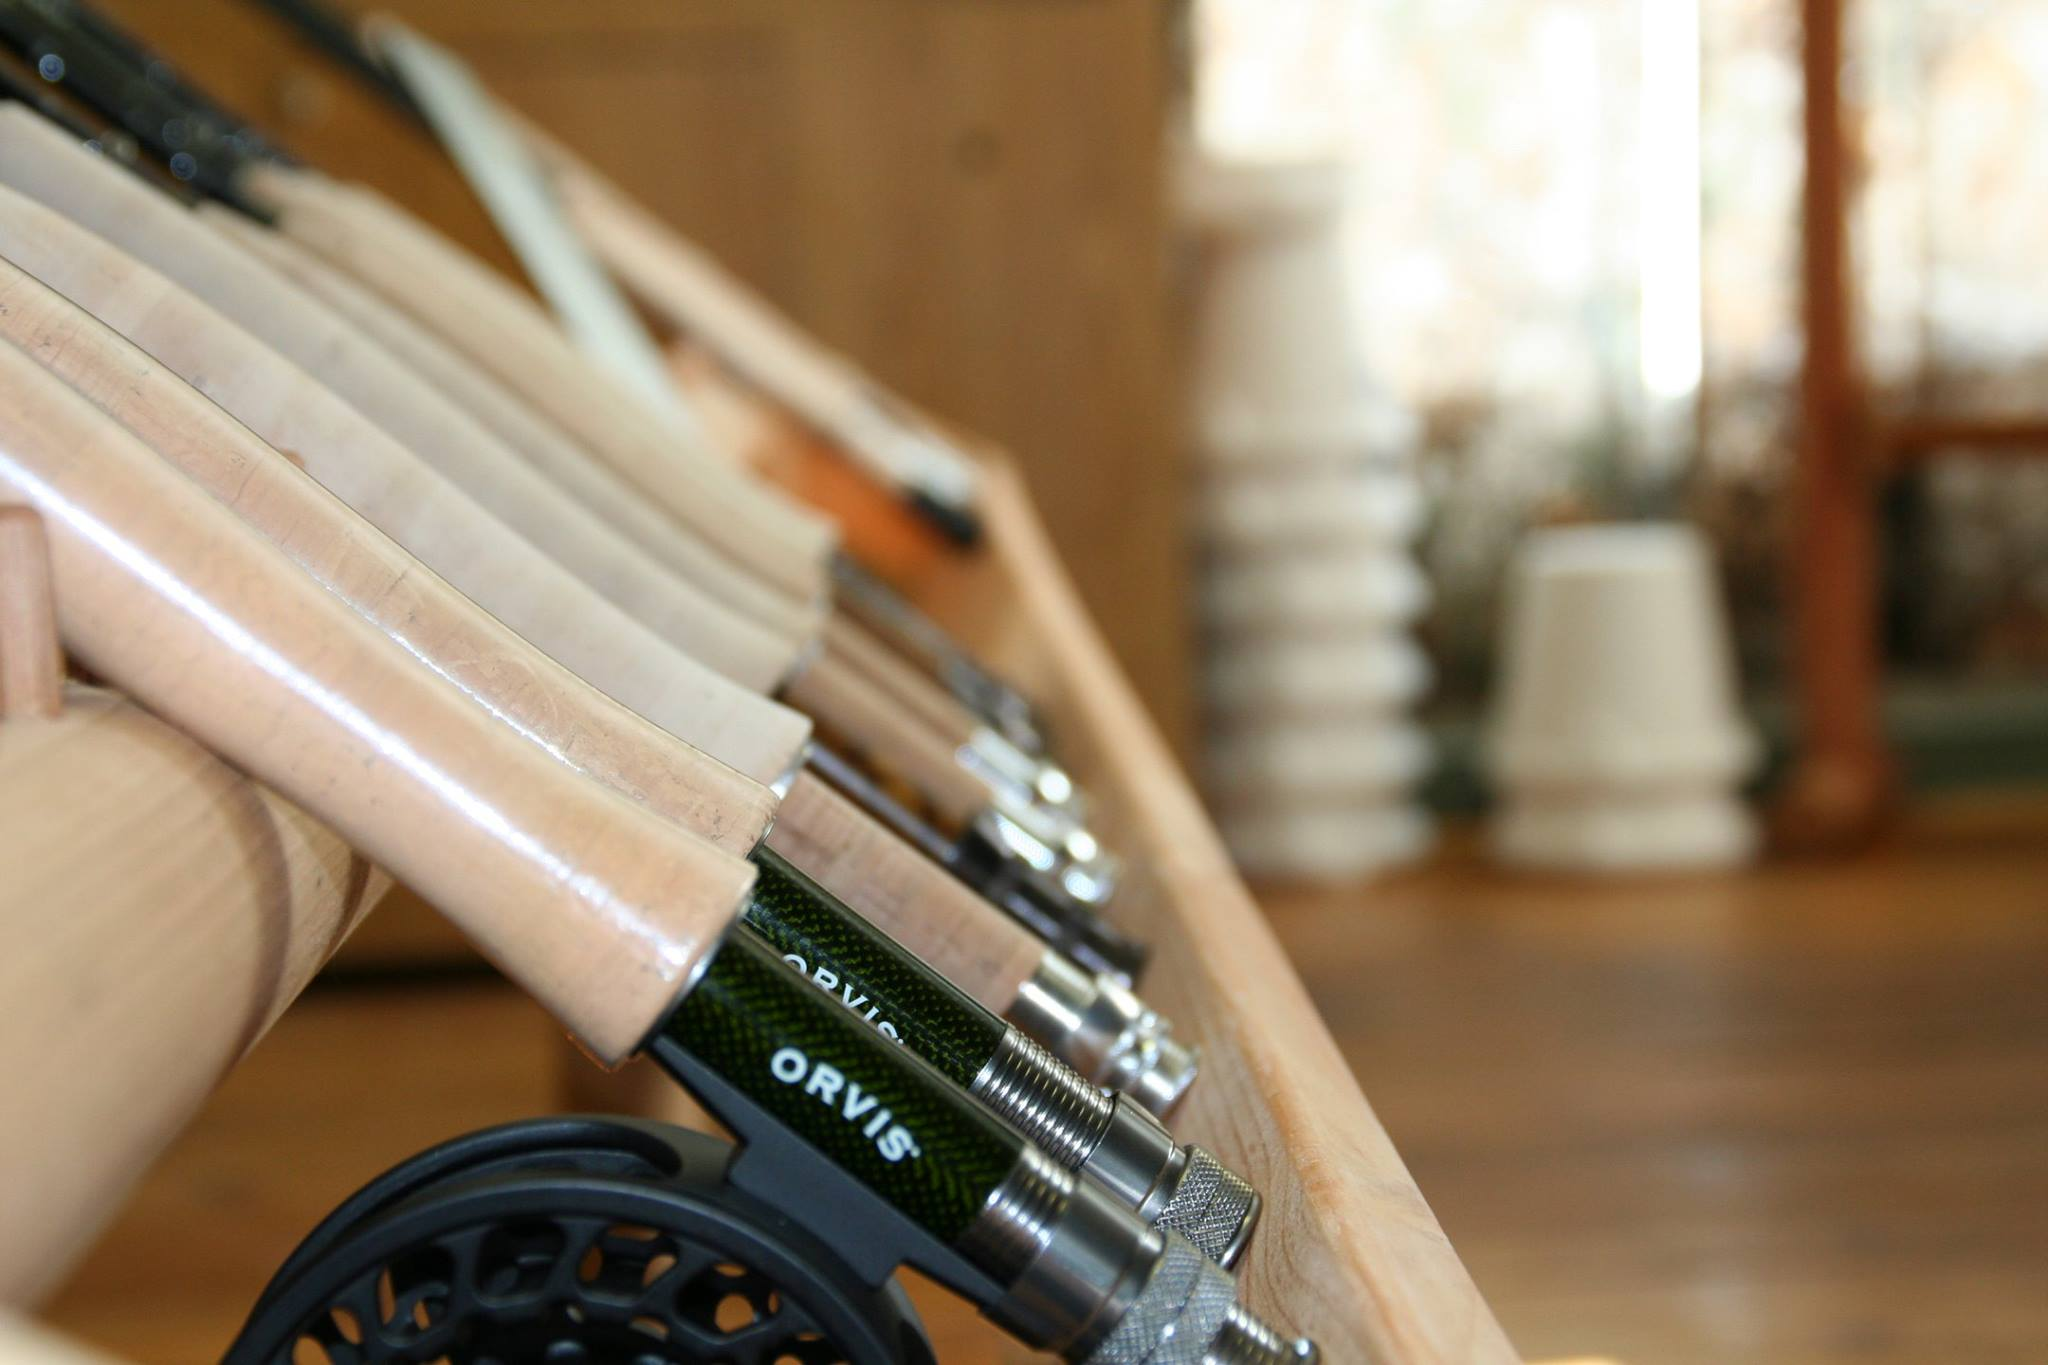 Orvis Fly Fishing Products